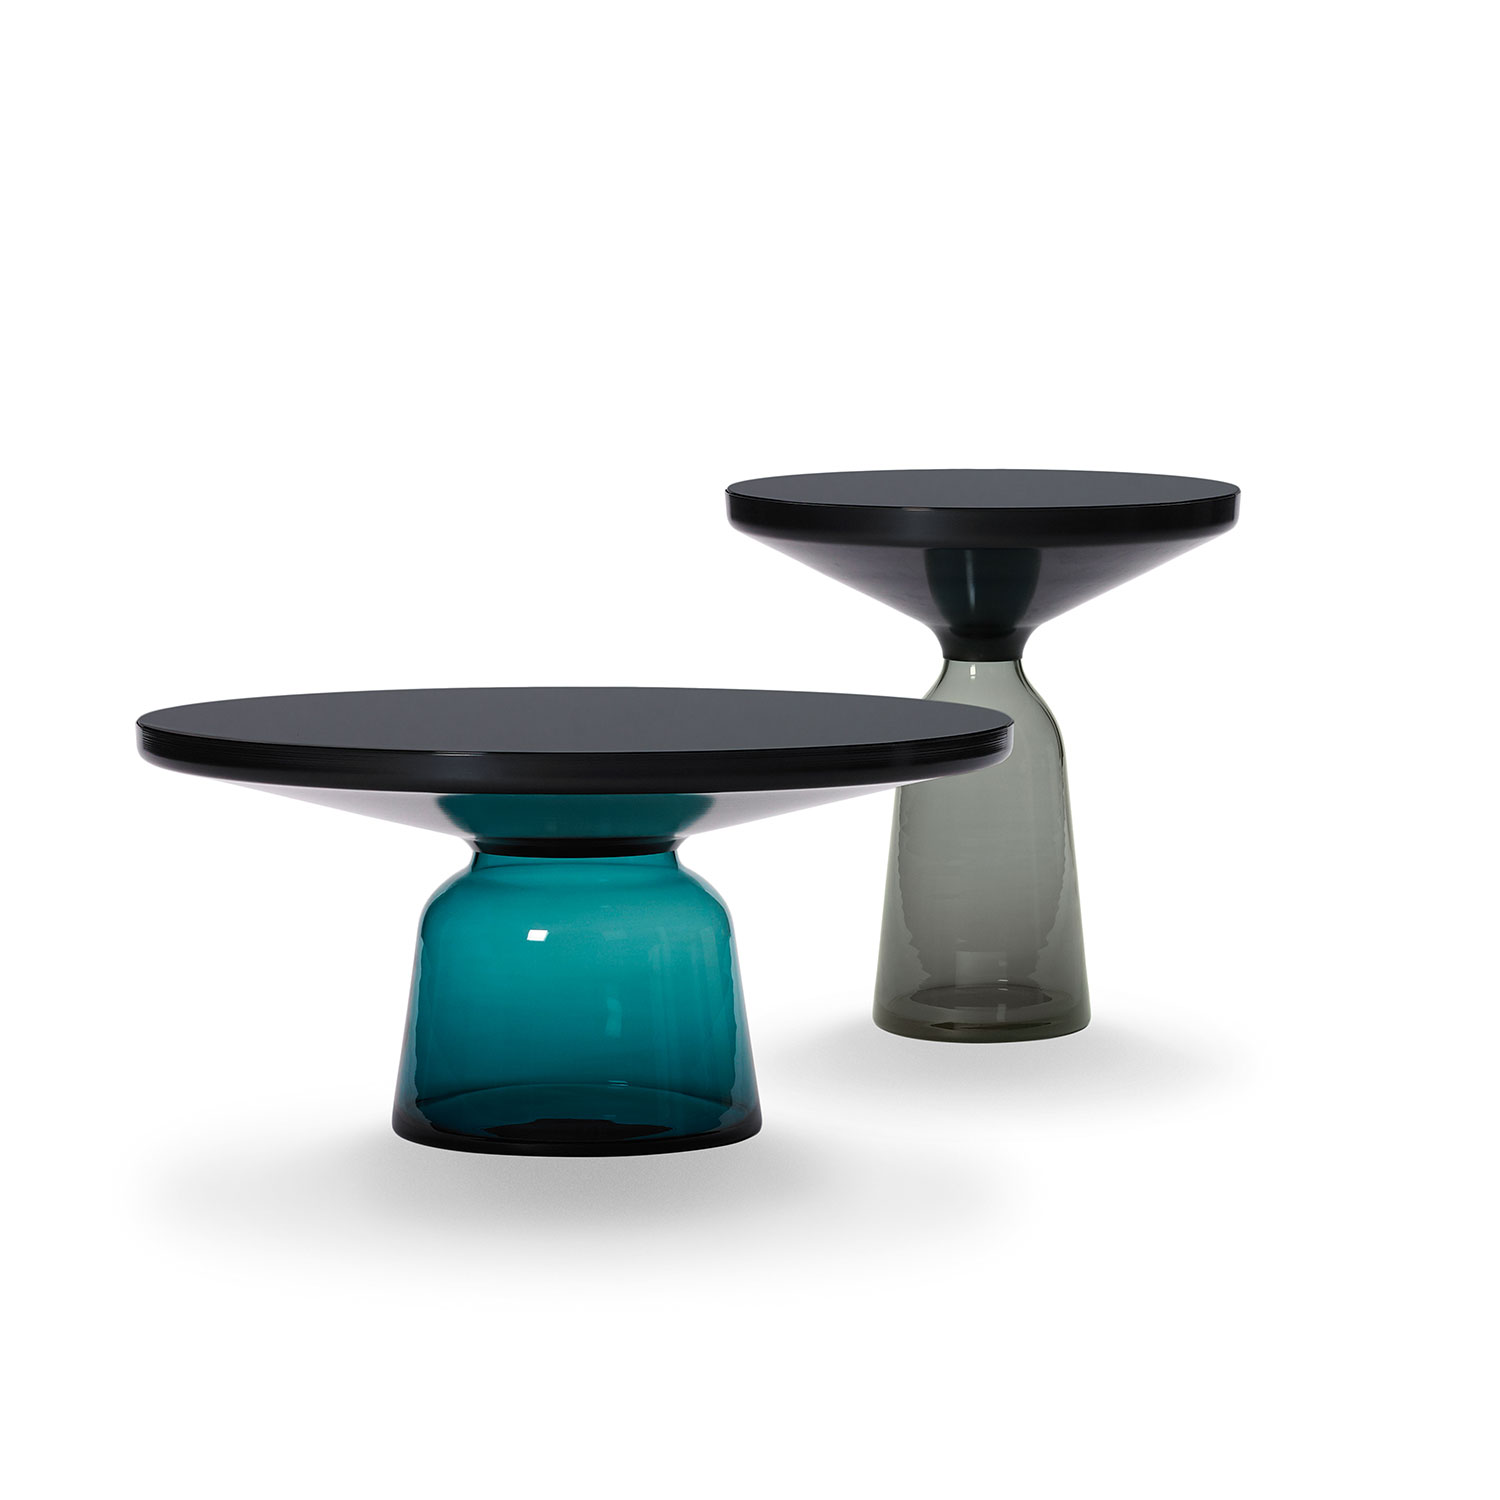 Classicon bell table by Sebastian Herkner - Best of Salone Internazionale del Mobile 2015   Yellowtrace